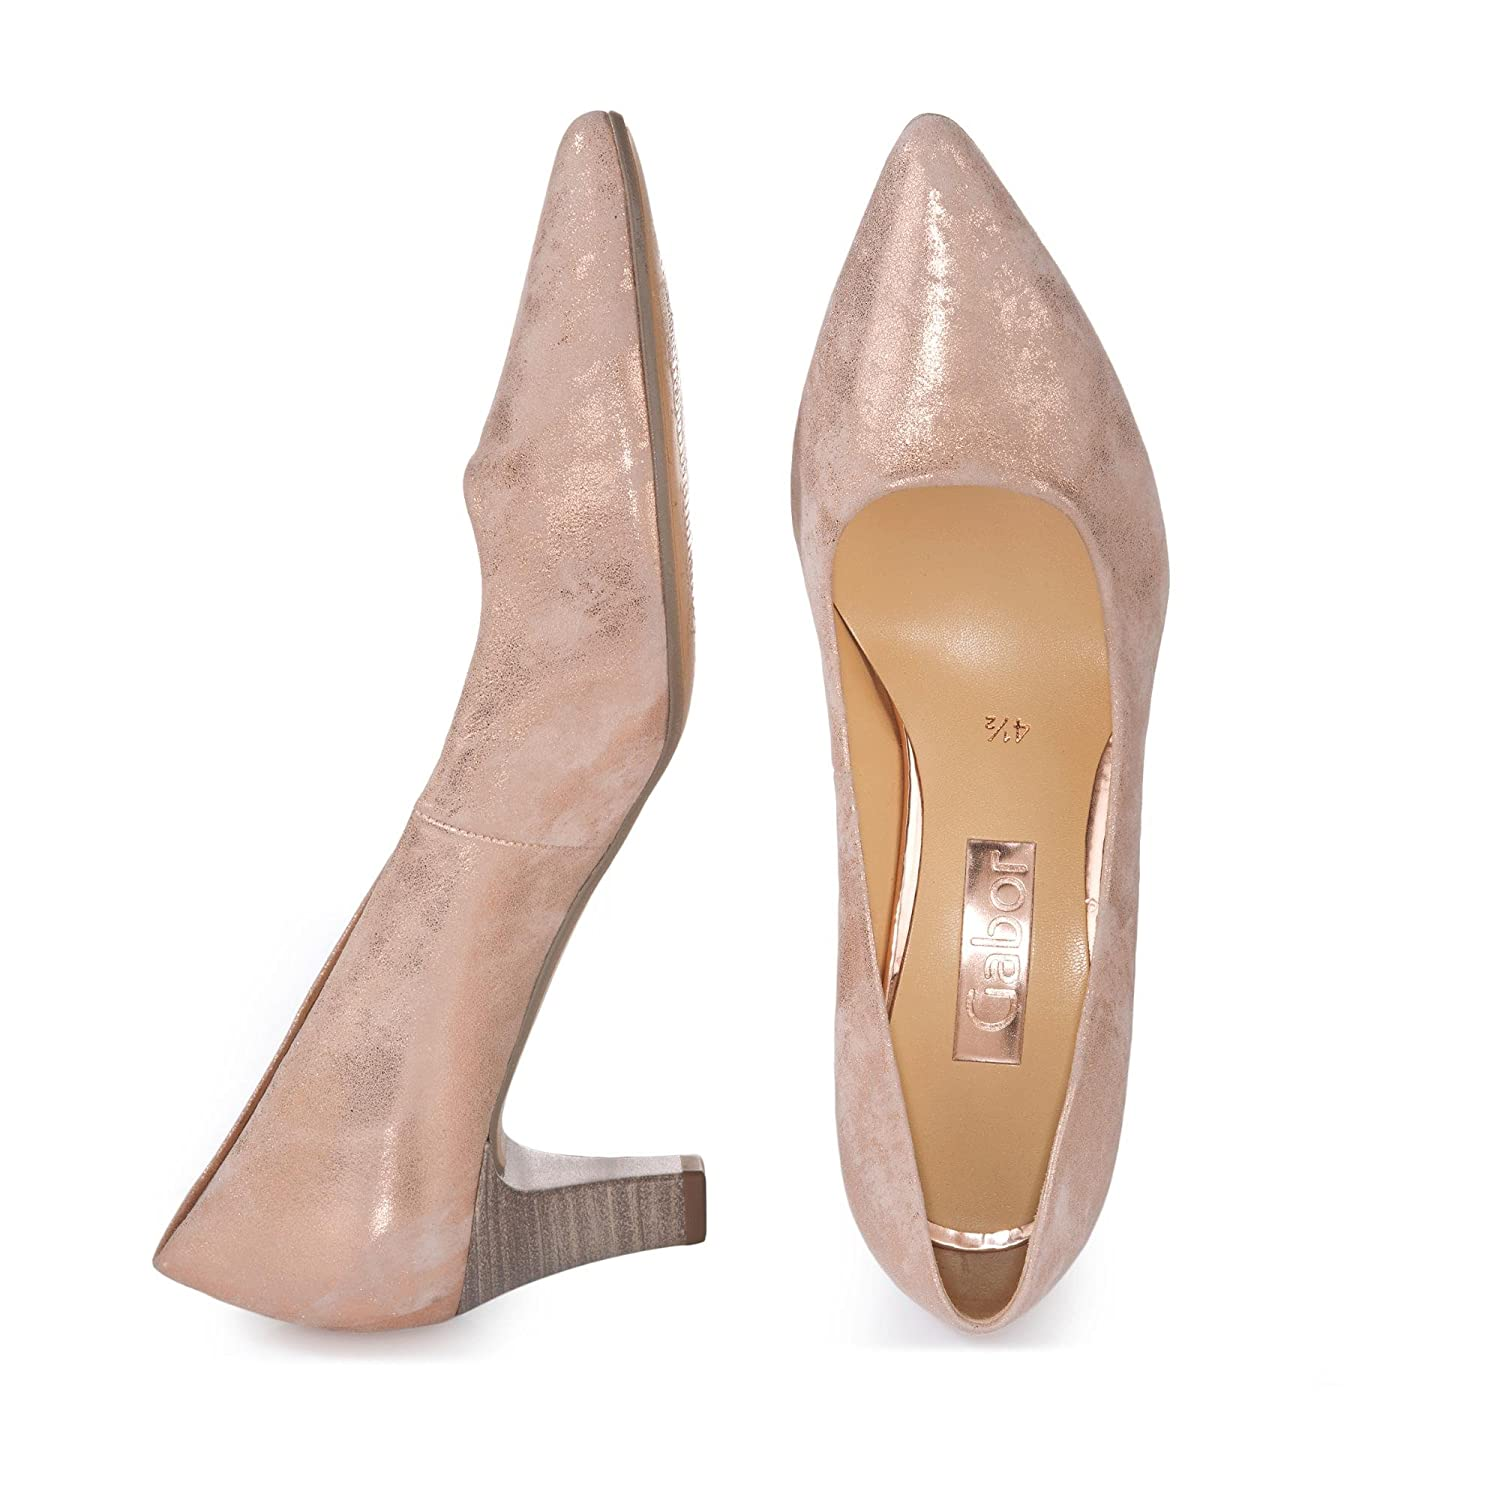 Gabor Damen Pumps 41.250.61 41.250.61 41.250.61 grau 144157 917fe8